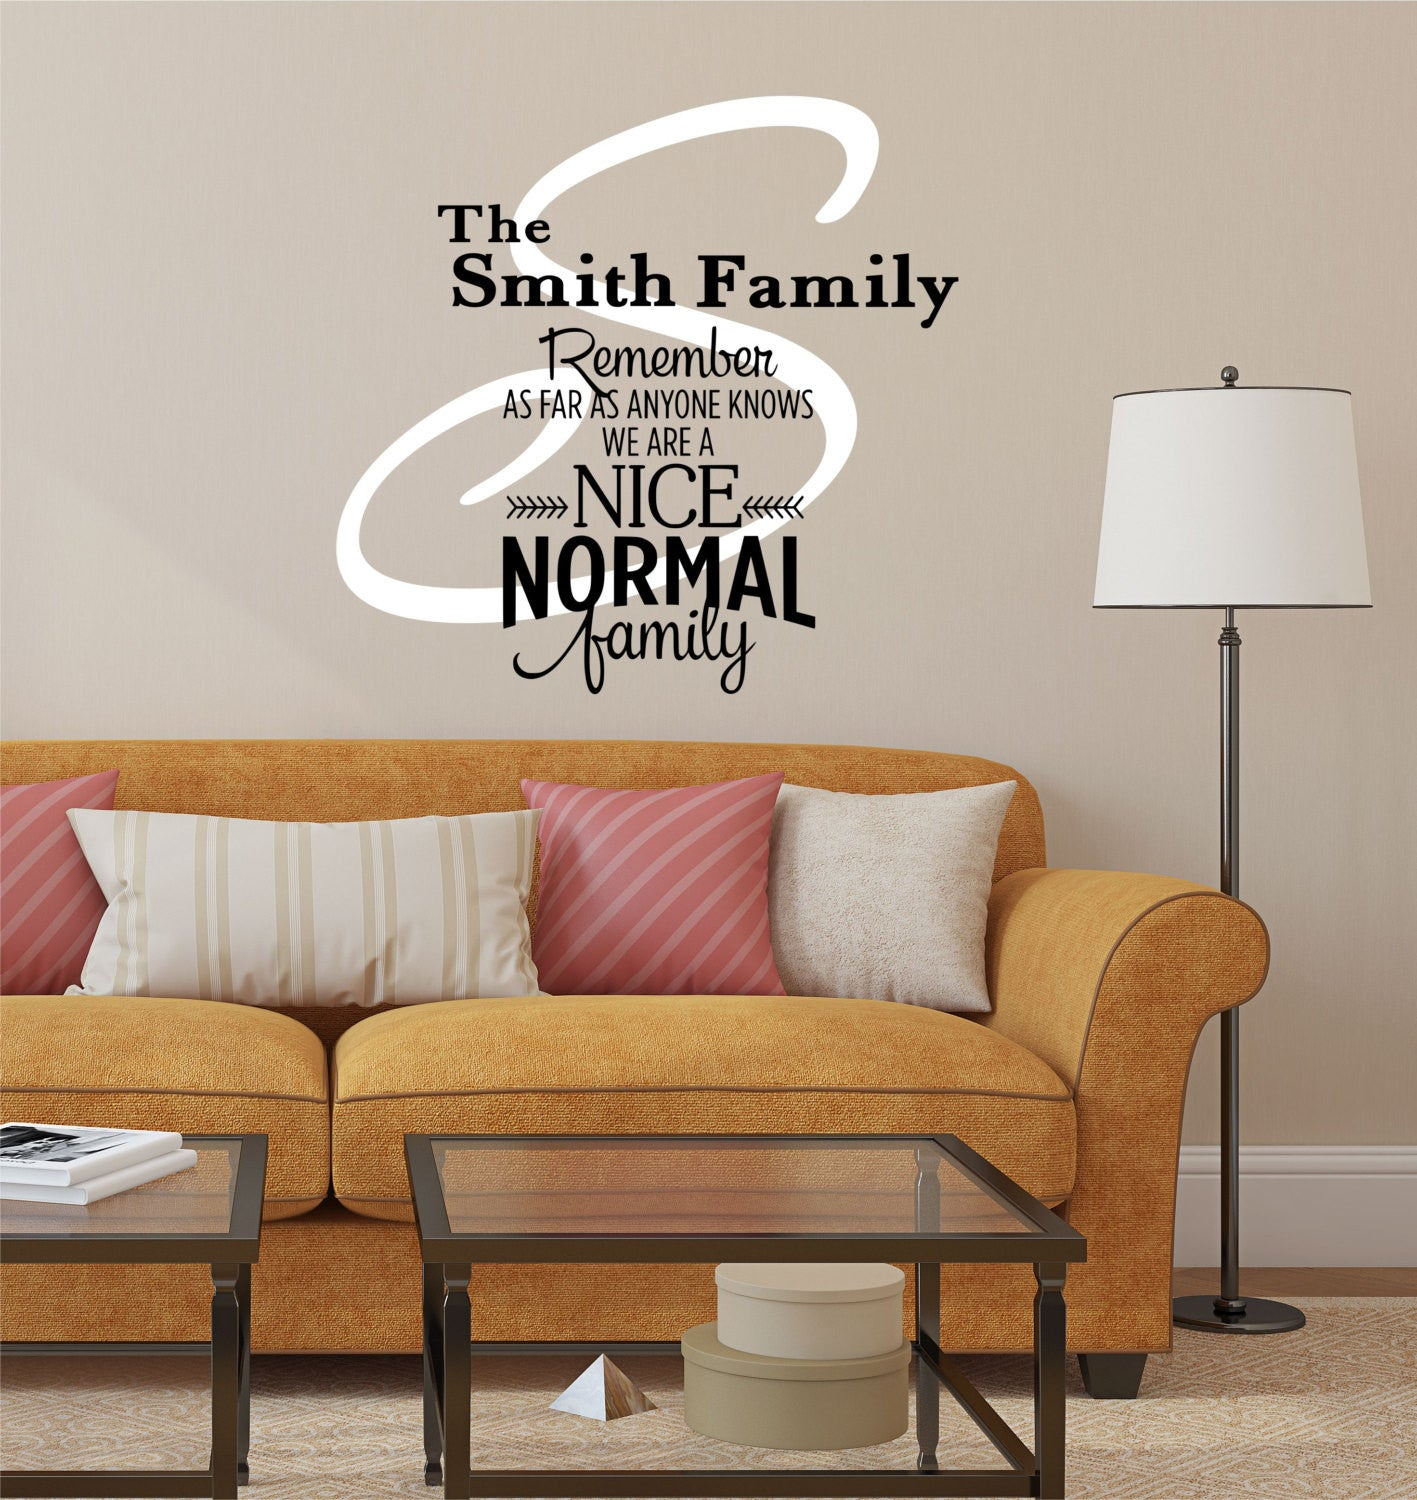 family name wall decals family name decal by decor designs decals nice normal family personalized family wall